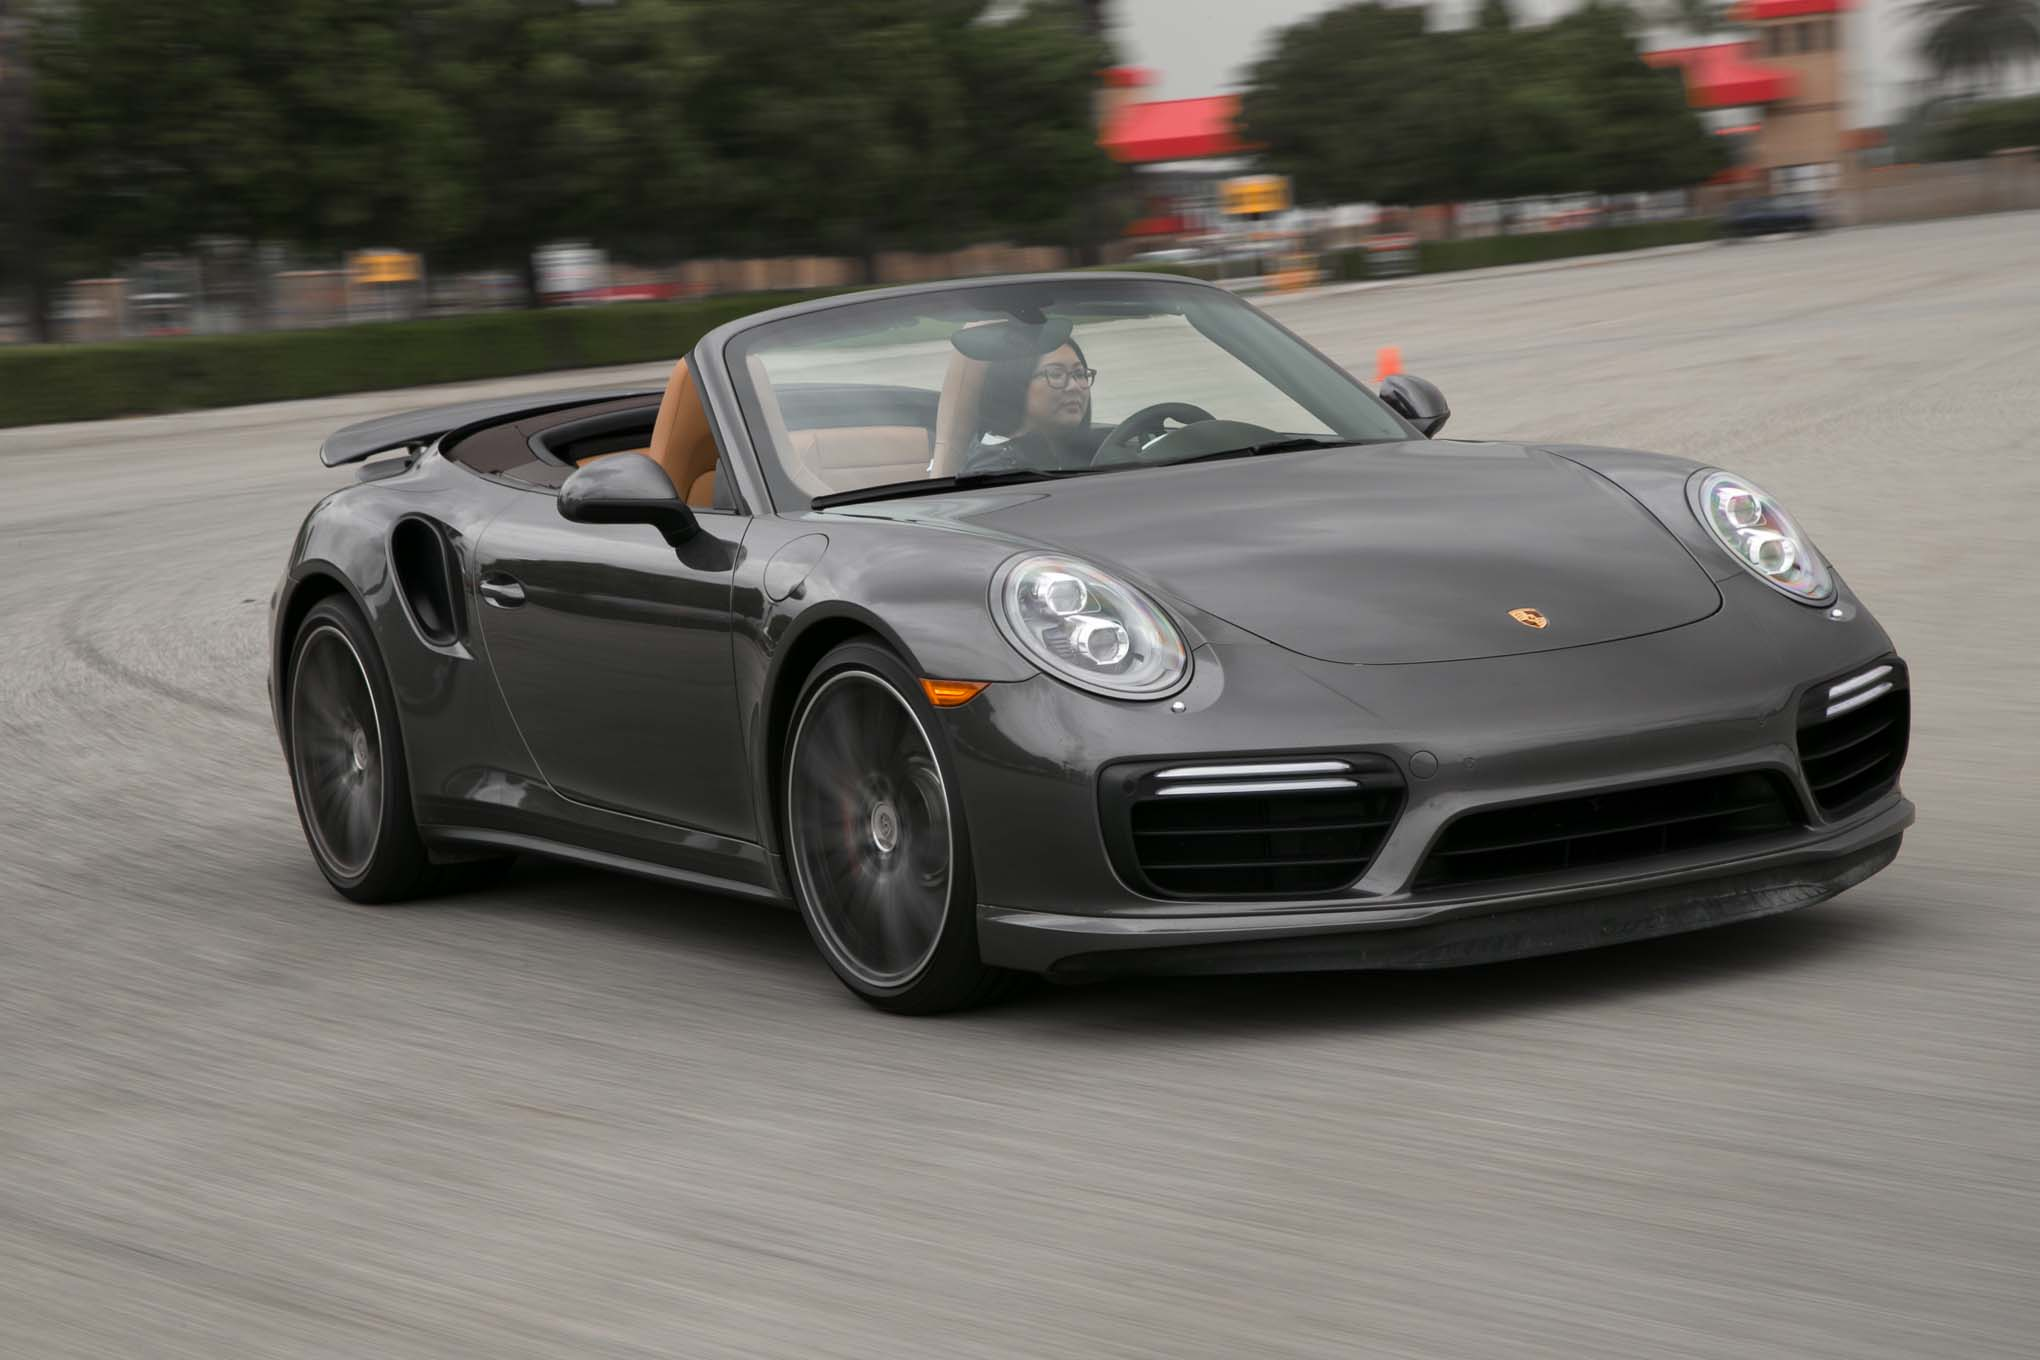 2017 Porsche 911 Turbo Cabriolet Front Three Quarters In Motion